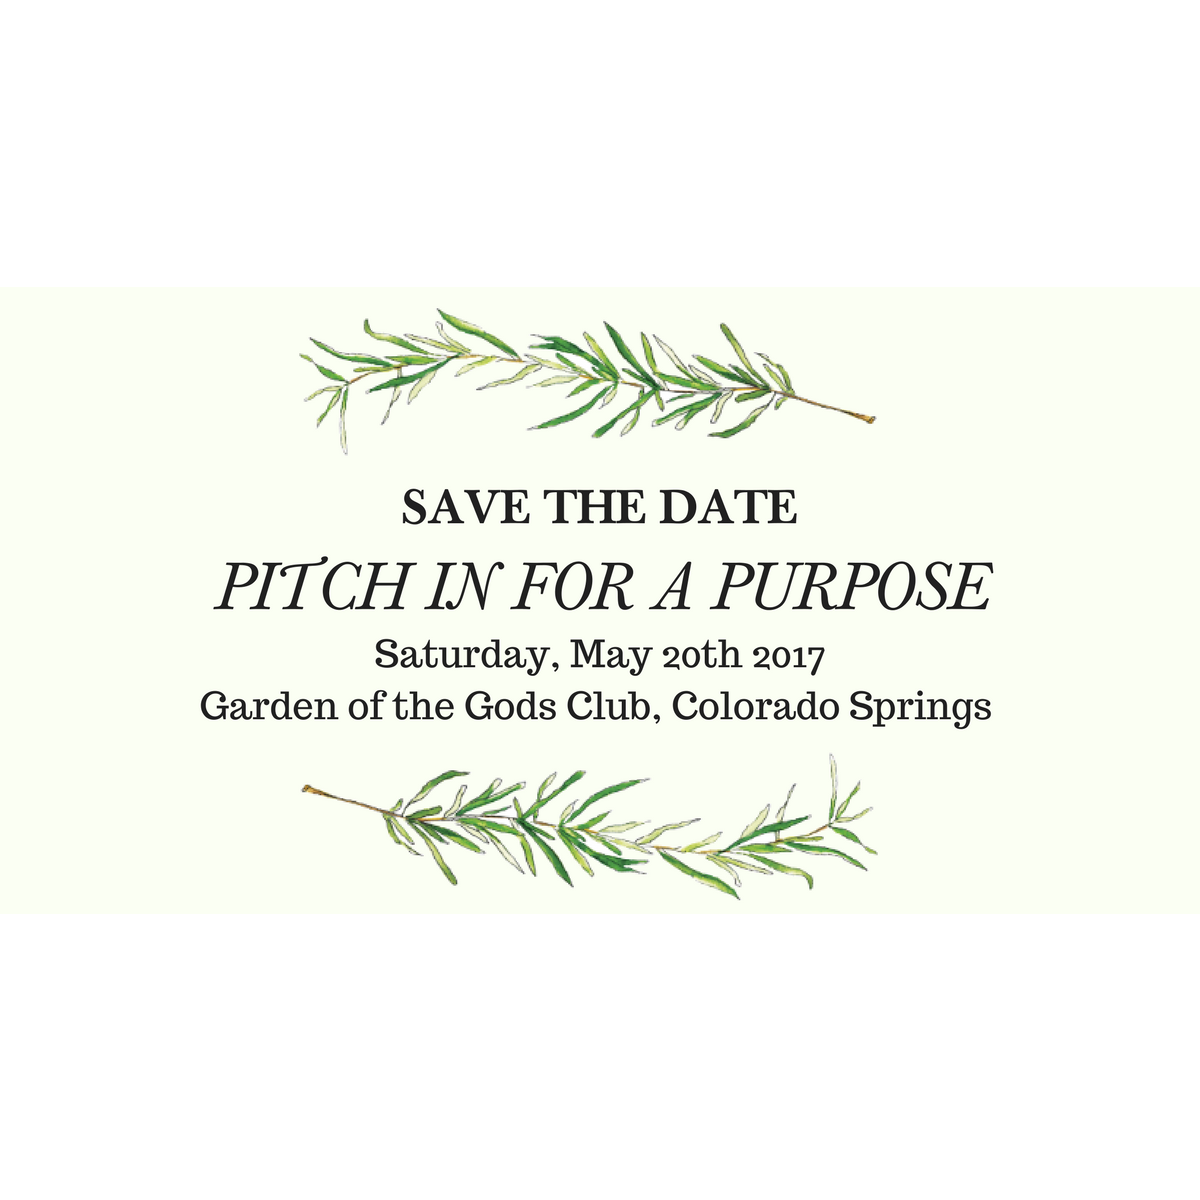 http://www.joeniekrofoundation.com/events/past-events/pastevents2017/pitch-in-for-a-purpose/attachment/pitch-in-for-a-purpose-1200x1200/